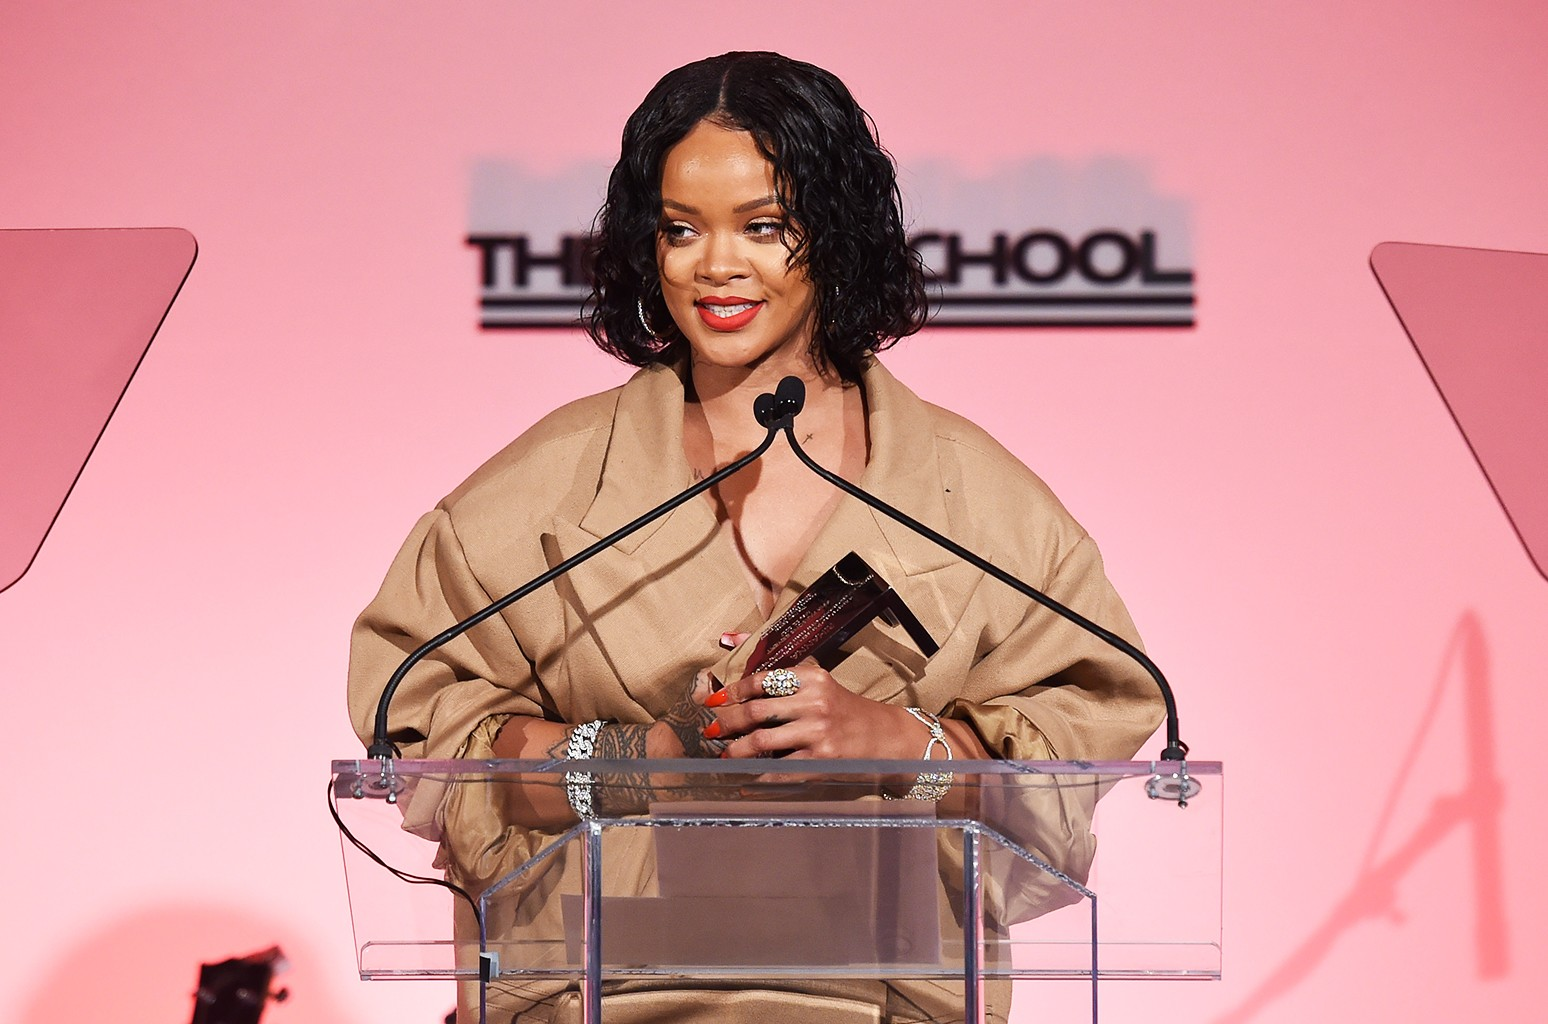 Rihanna during the 69th Annual Parsons Benefit at Pier 60 on May 22, 2017 in New York City.